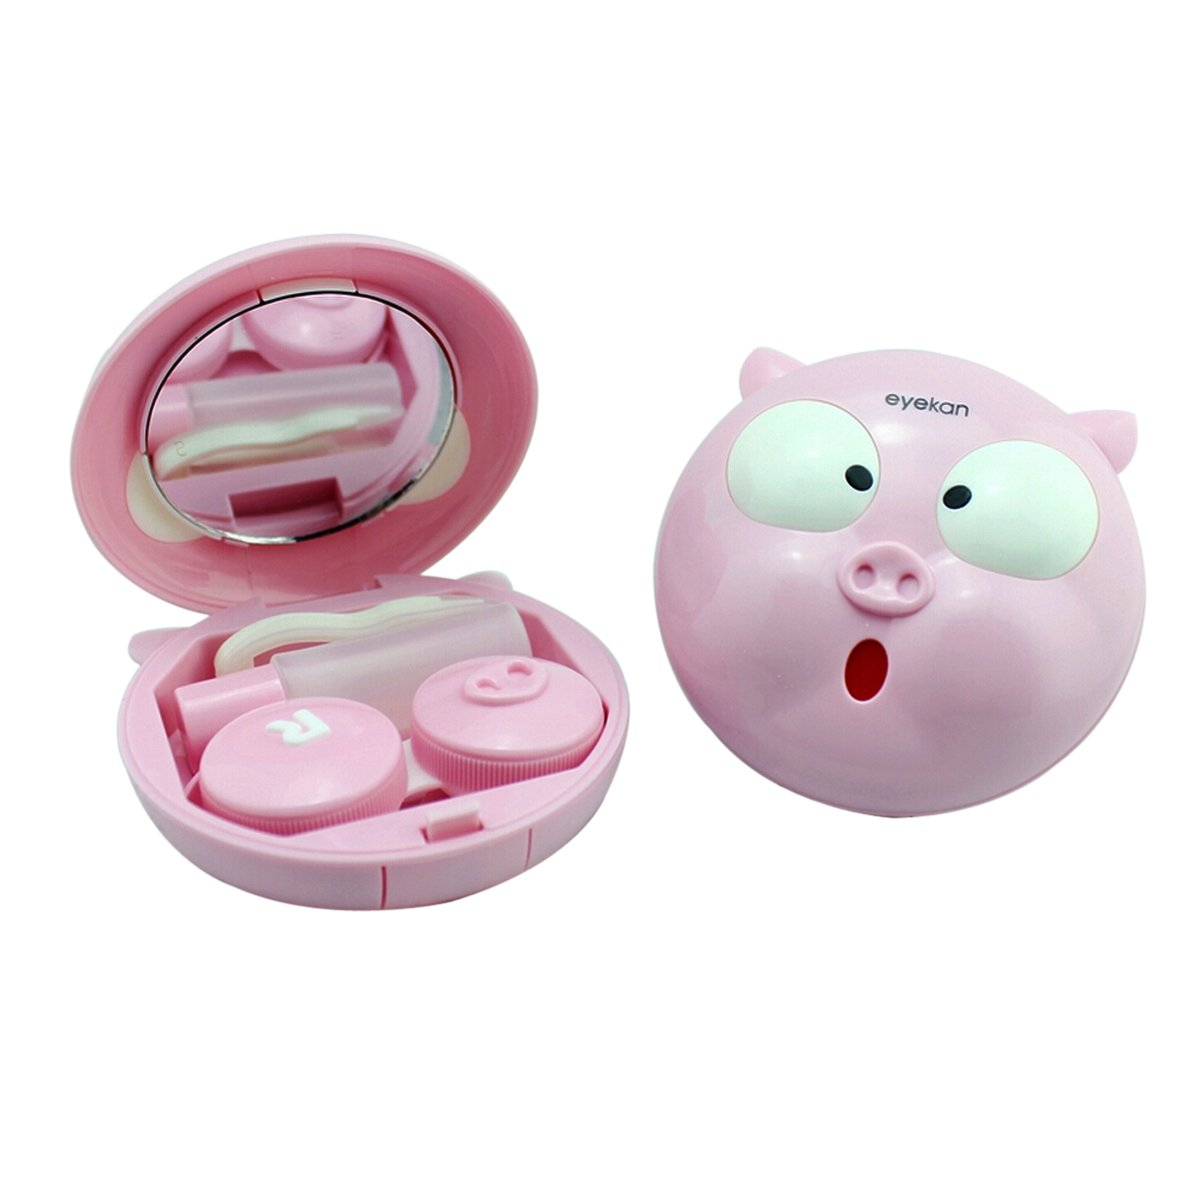 Zcargel New Arrival Cute Cartoon Pink Pig Travel Contact Lens Case Kit Container